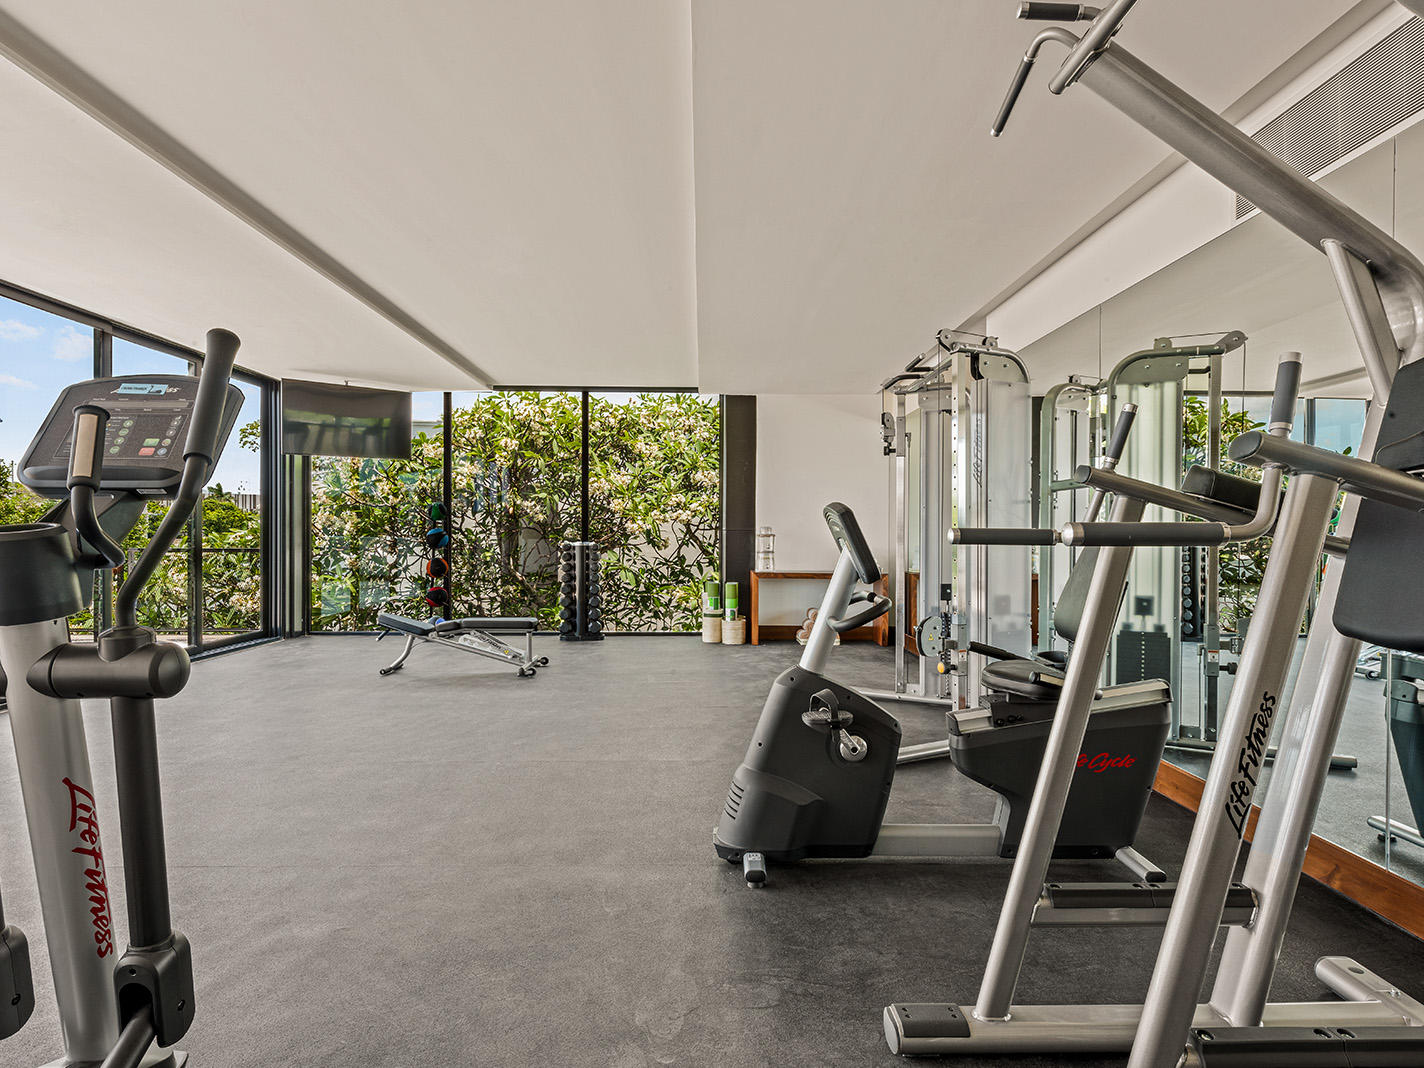 Gym and fitness center at Wayam Mundo Imperial